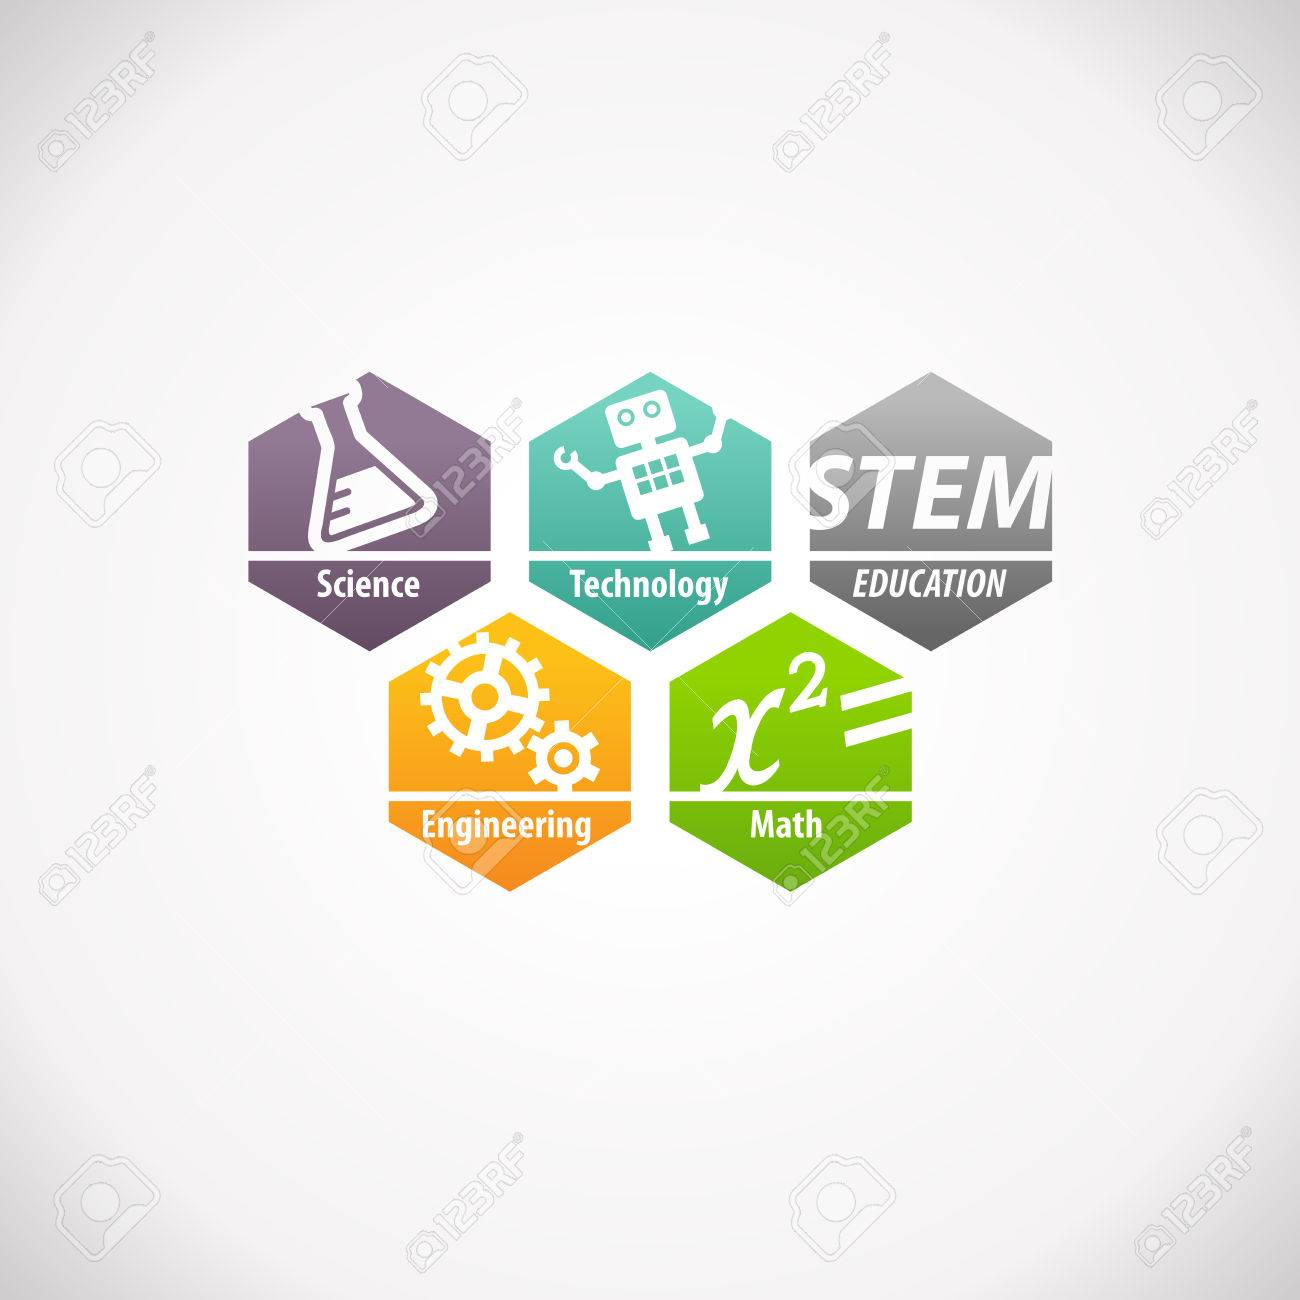 Stem Education Concept Logo Science Technology Engineering Mathematics Stock Photo Picture And Royalty Free Image Image 78258986